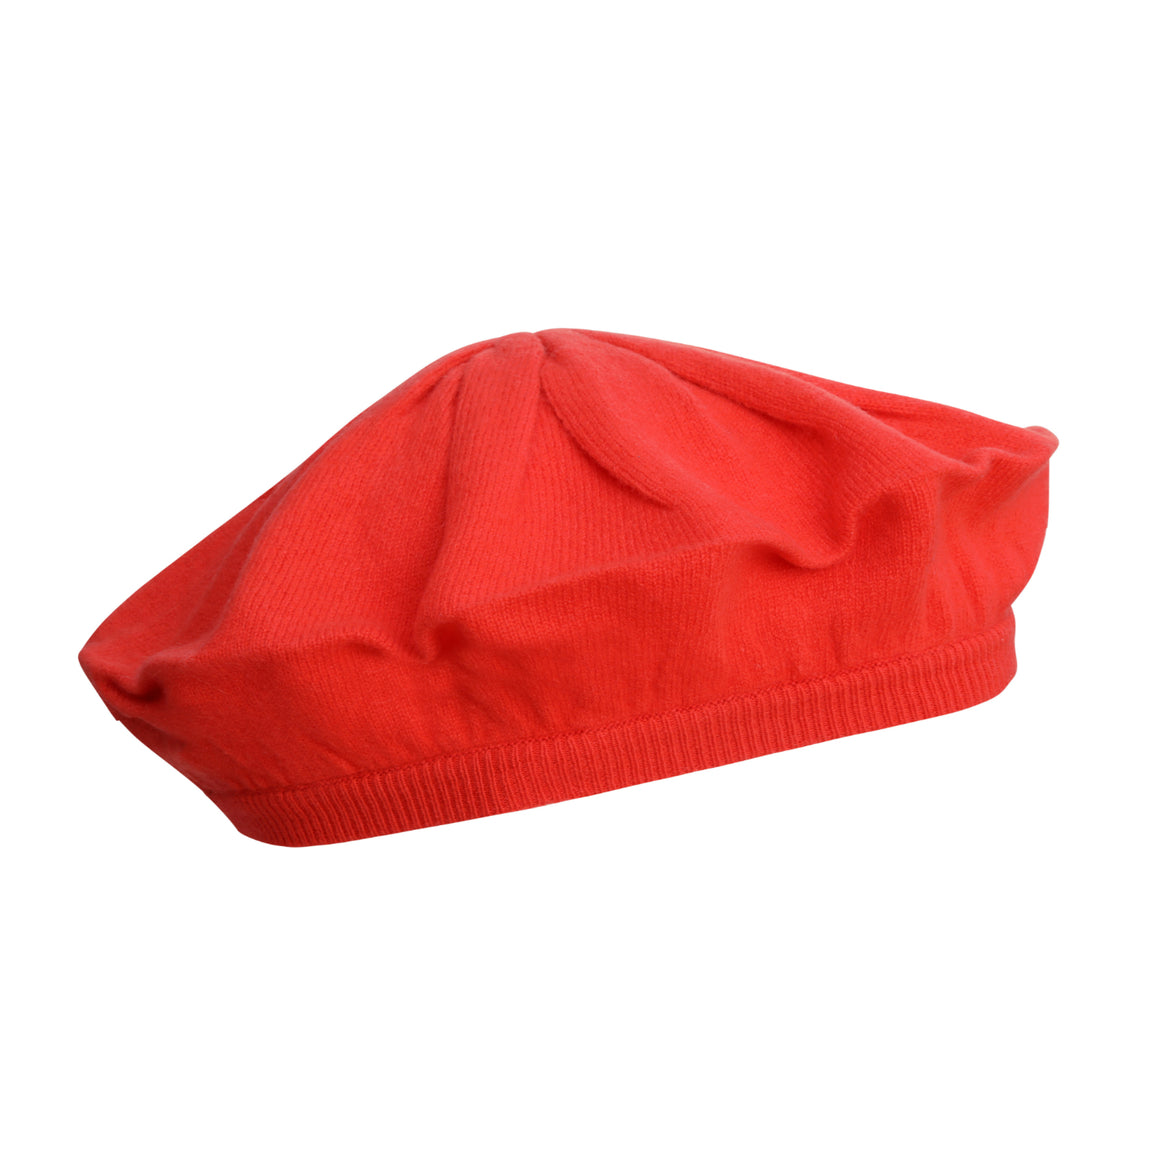 Red Cashmere Beret | buy now at The Cashmere Choice London